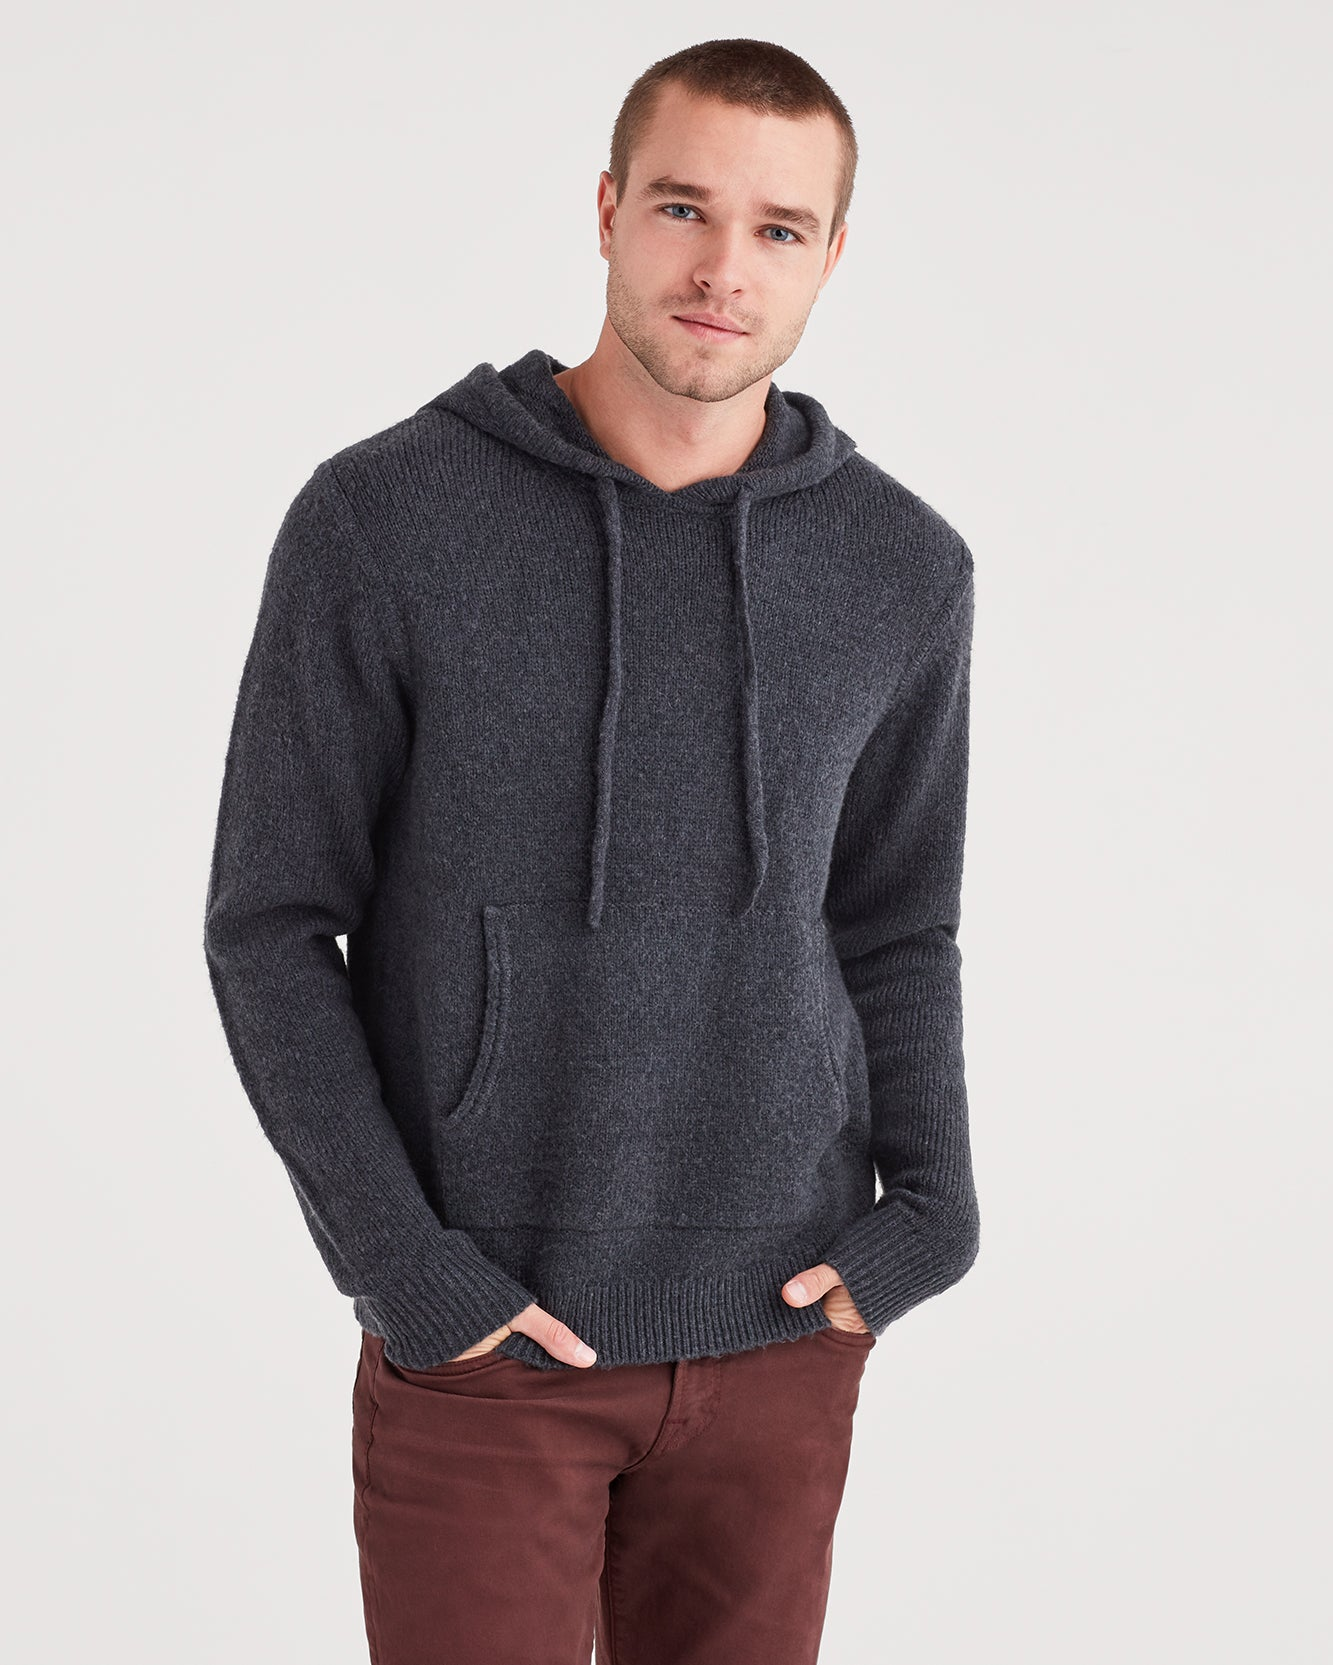 Image of Marled Sweater Hoodie in Charcoal